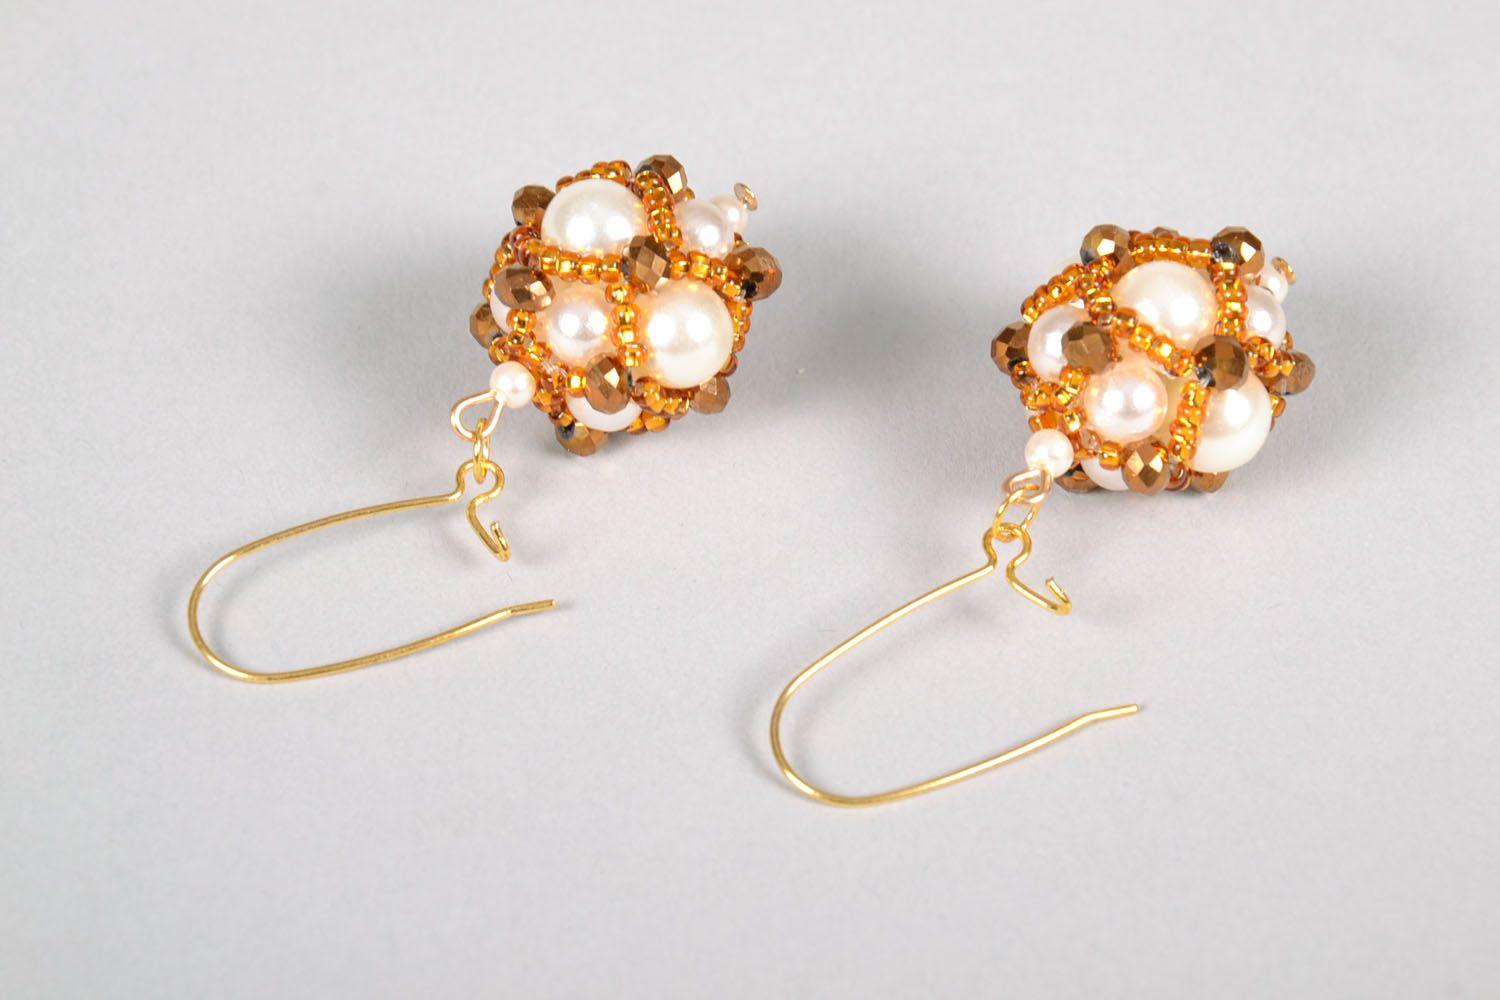 Unusual earrings with charms Golden East photo 4